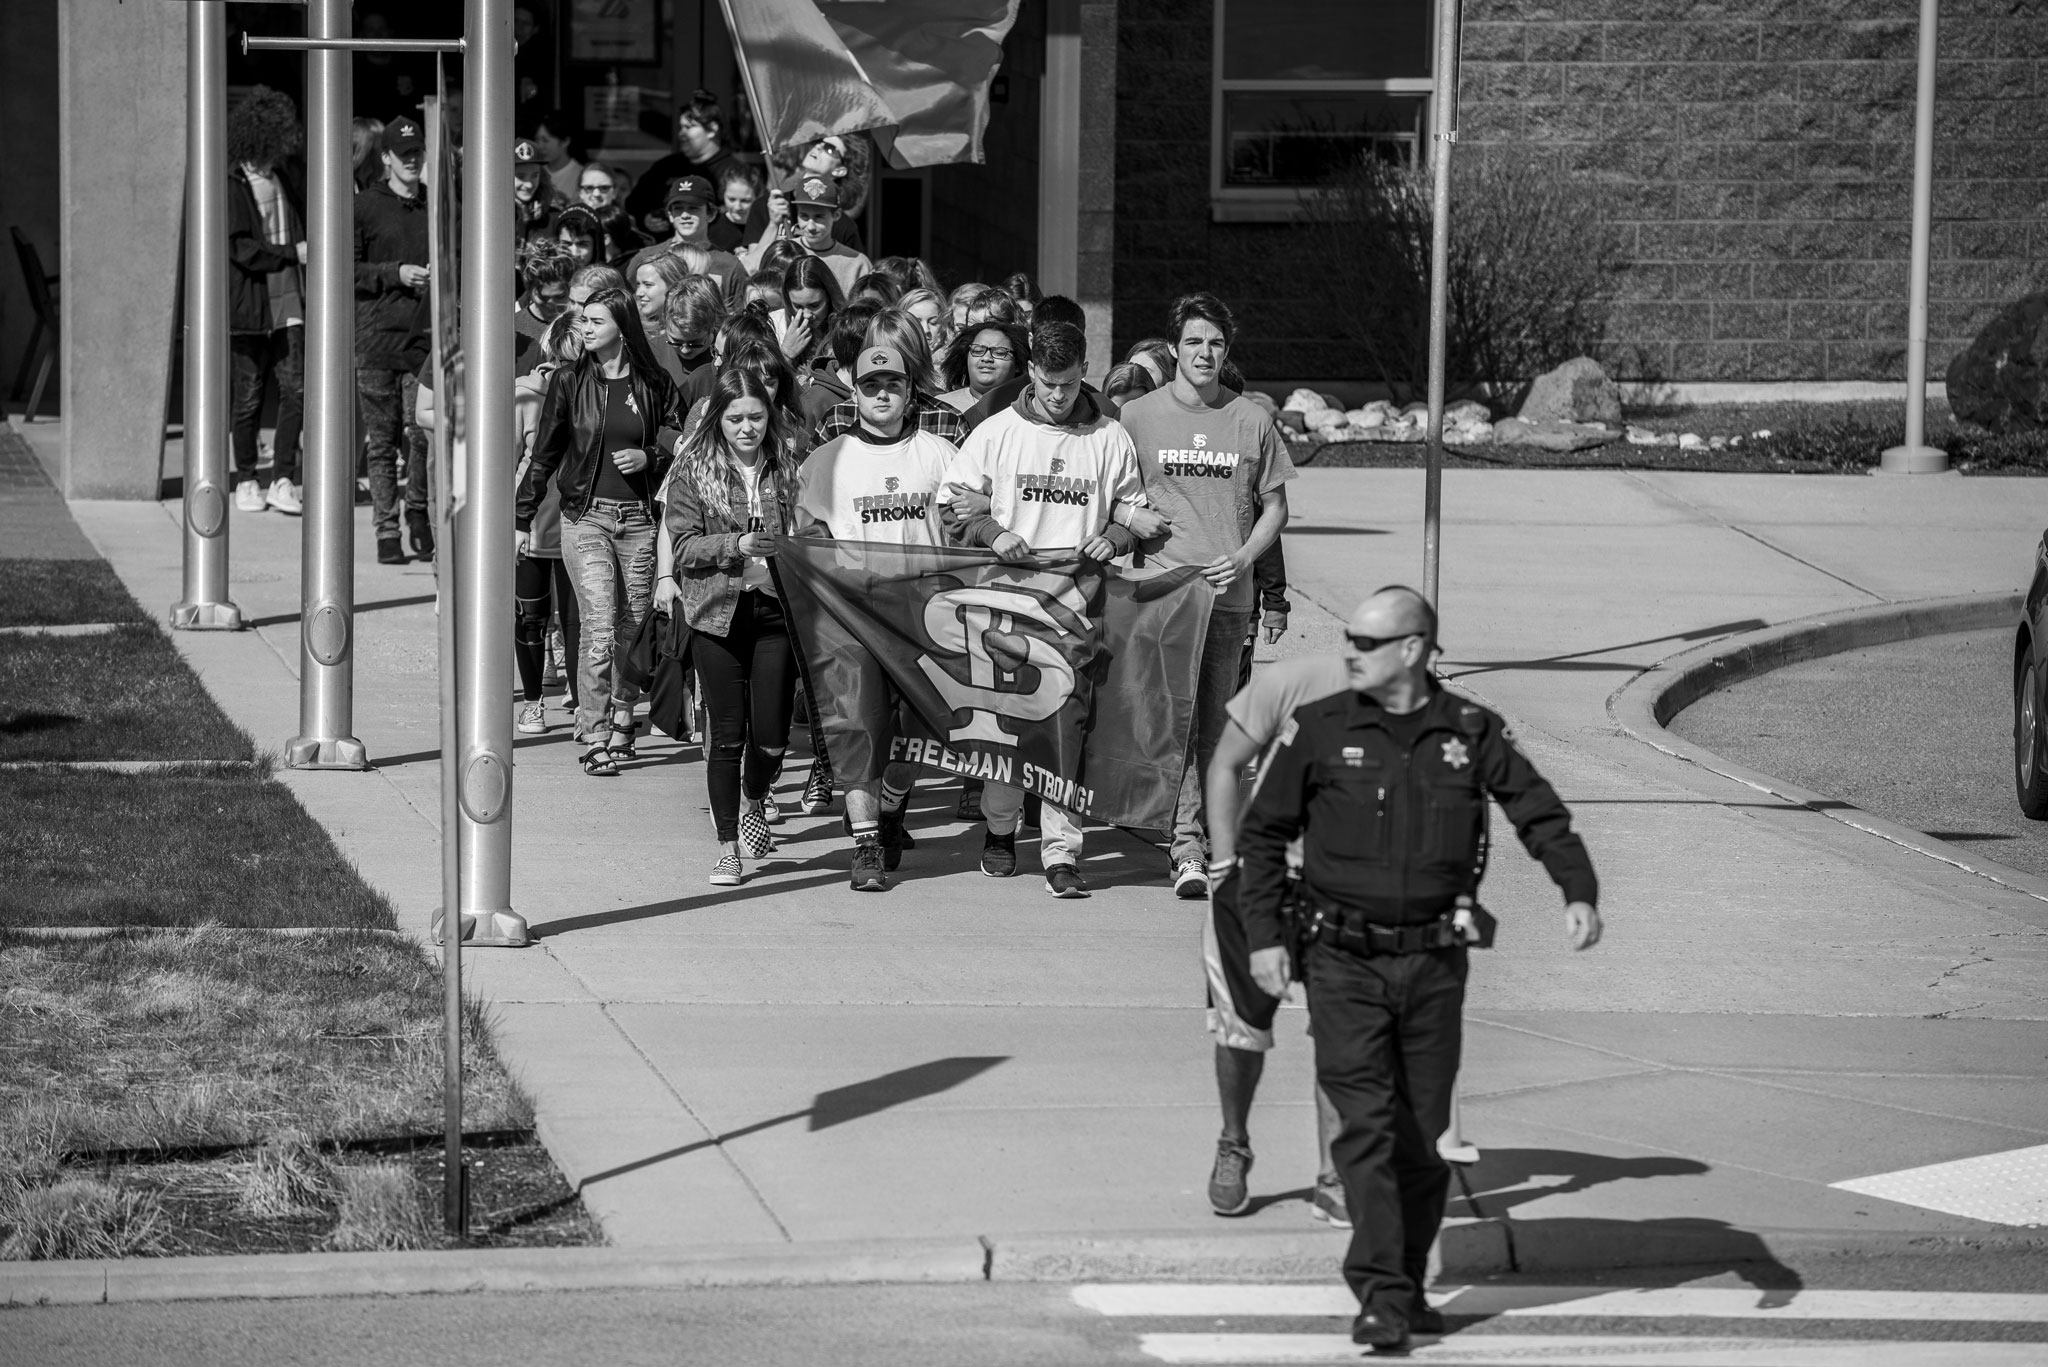 Freeman High School Walkout escorted by police